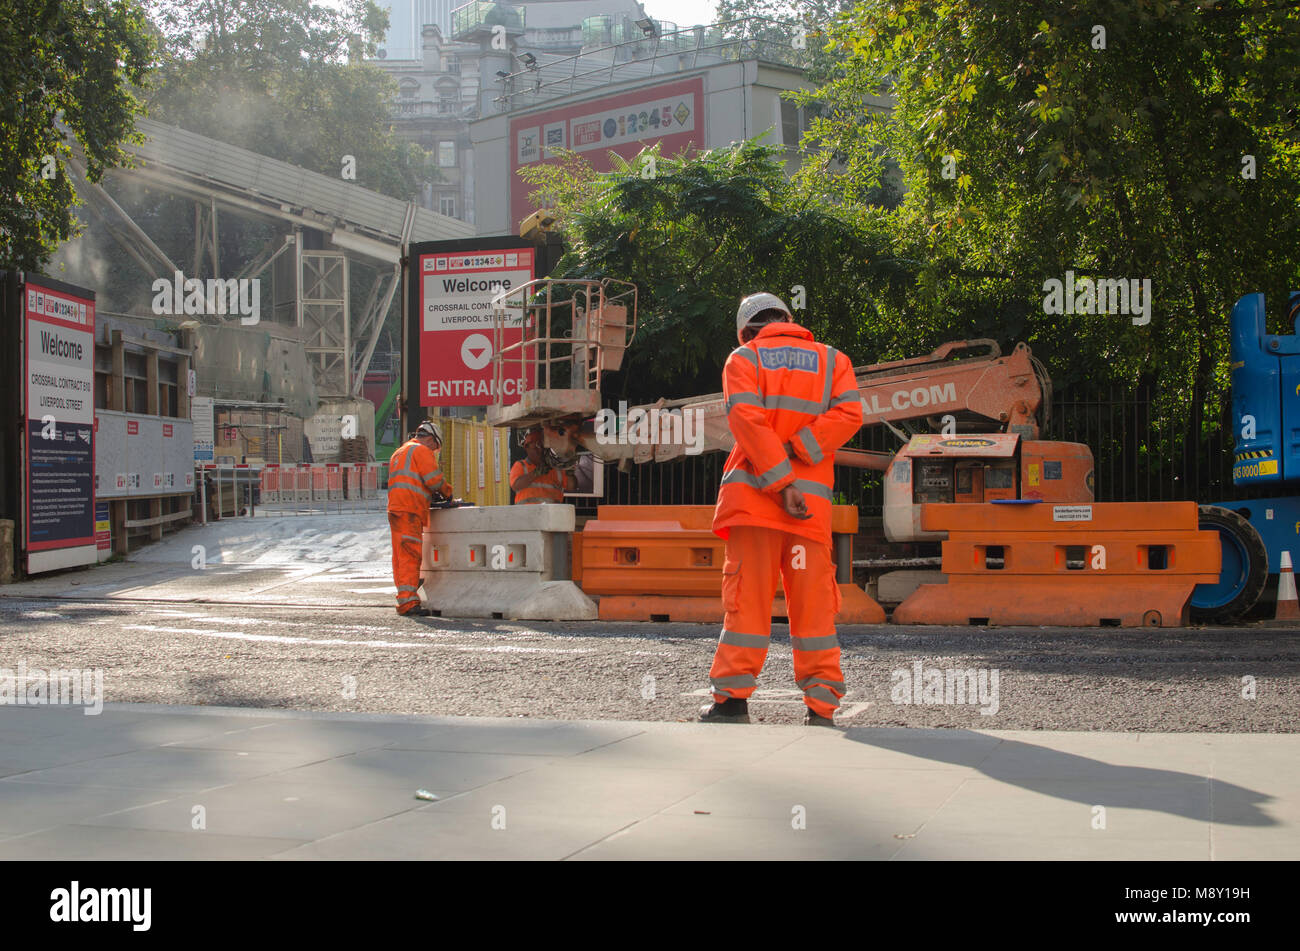 Construction workers on the site for the crossrail railway line at Finsbury Circus - Stock Image